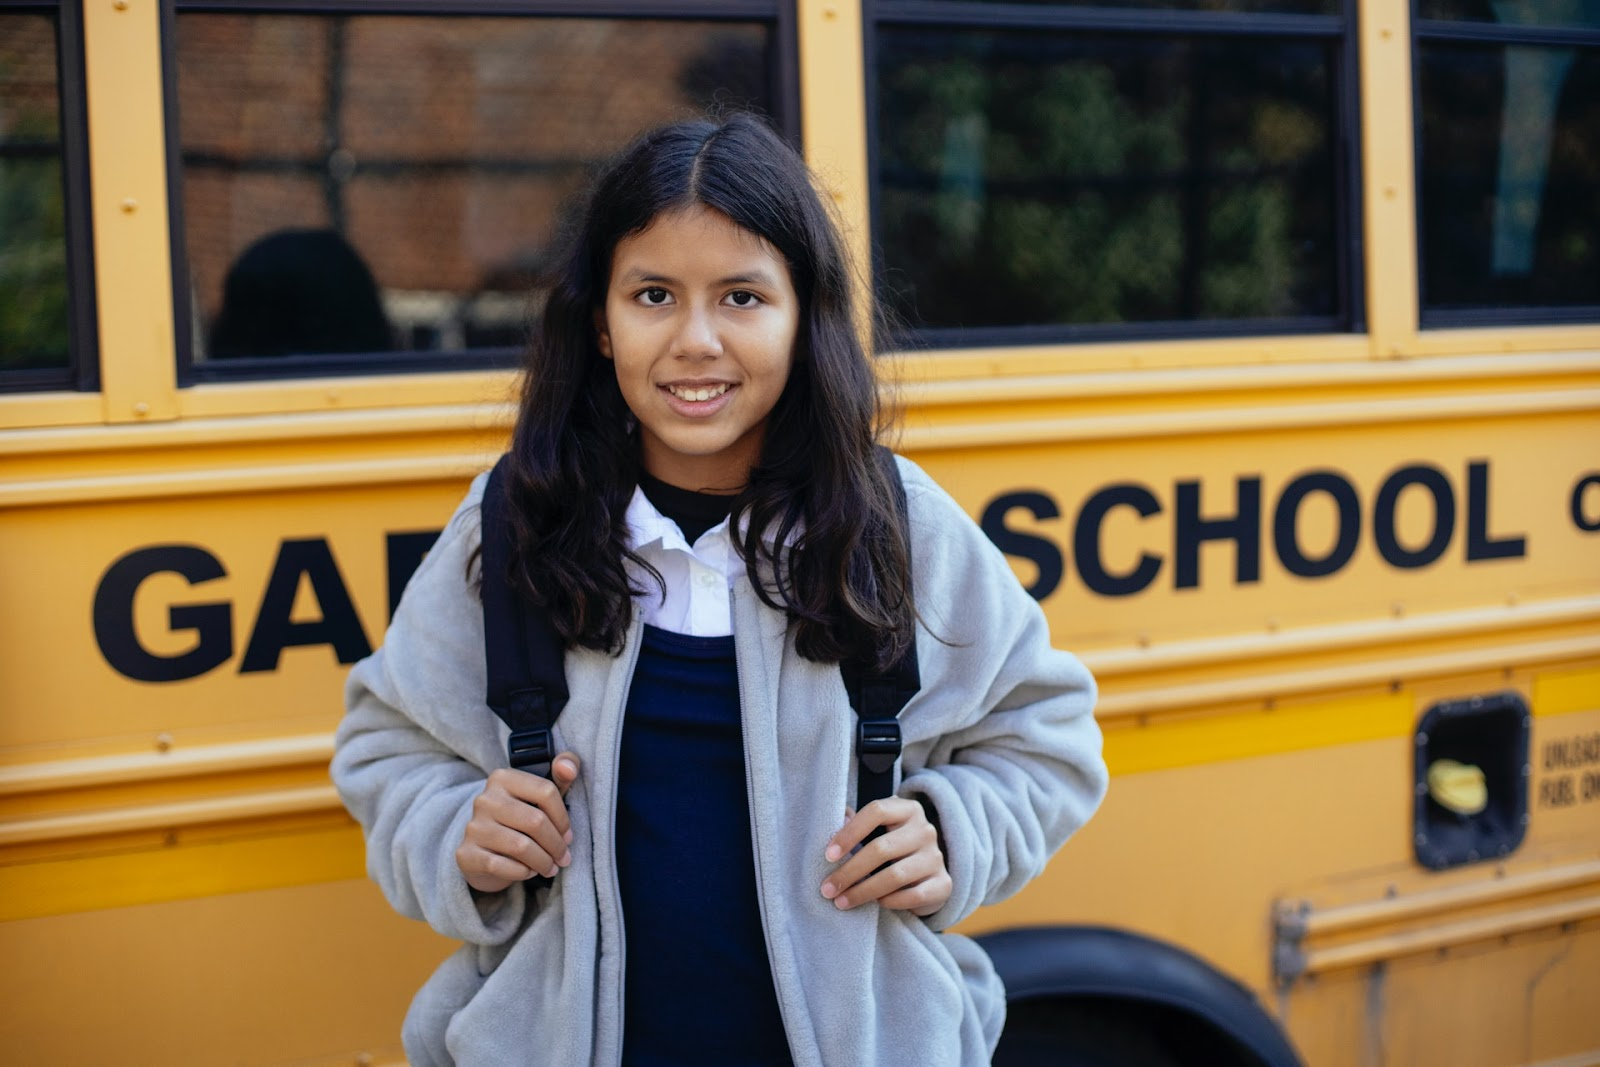 A young girl stands in front of a school bus while wearing a backpack.